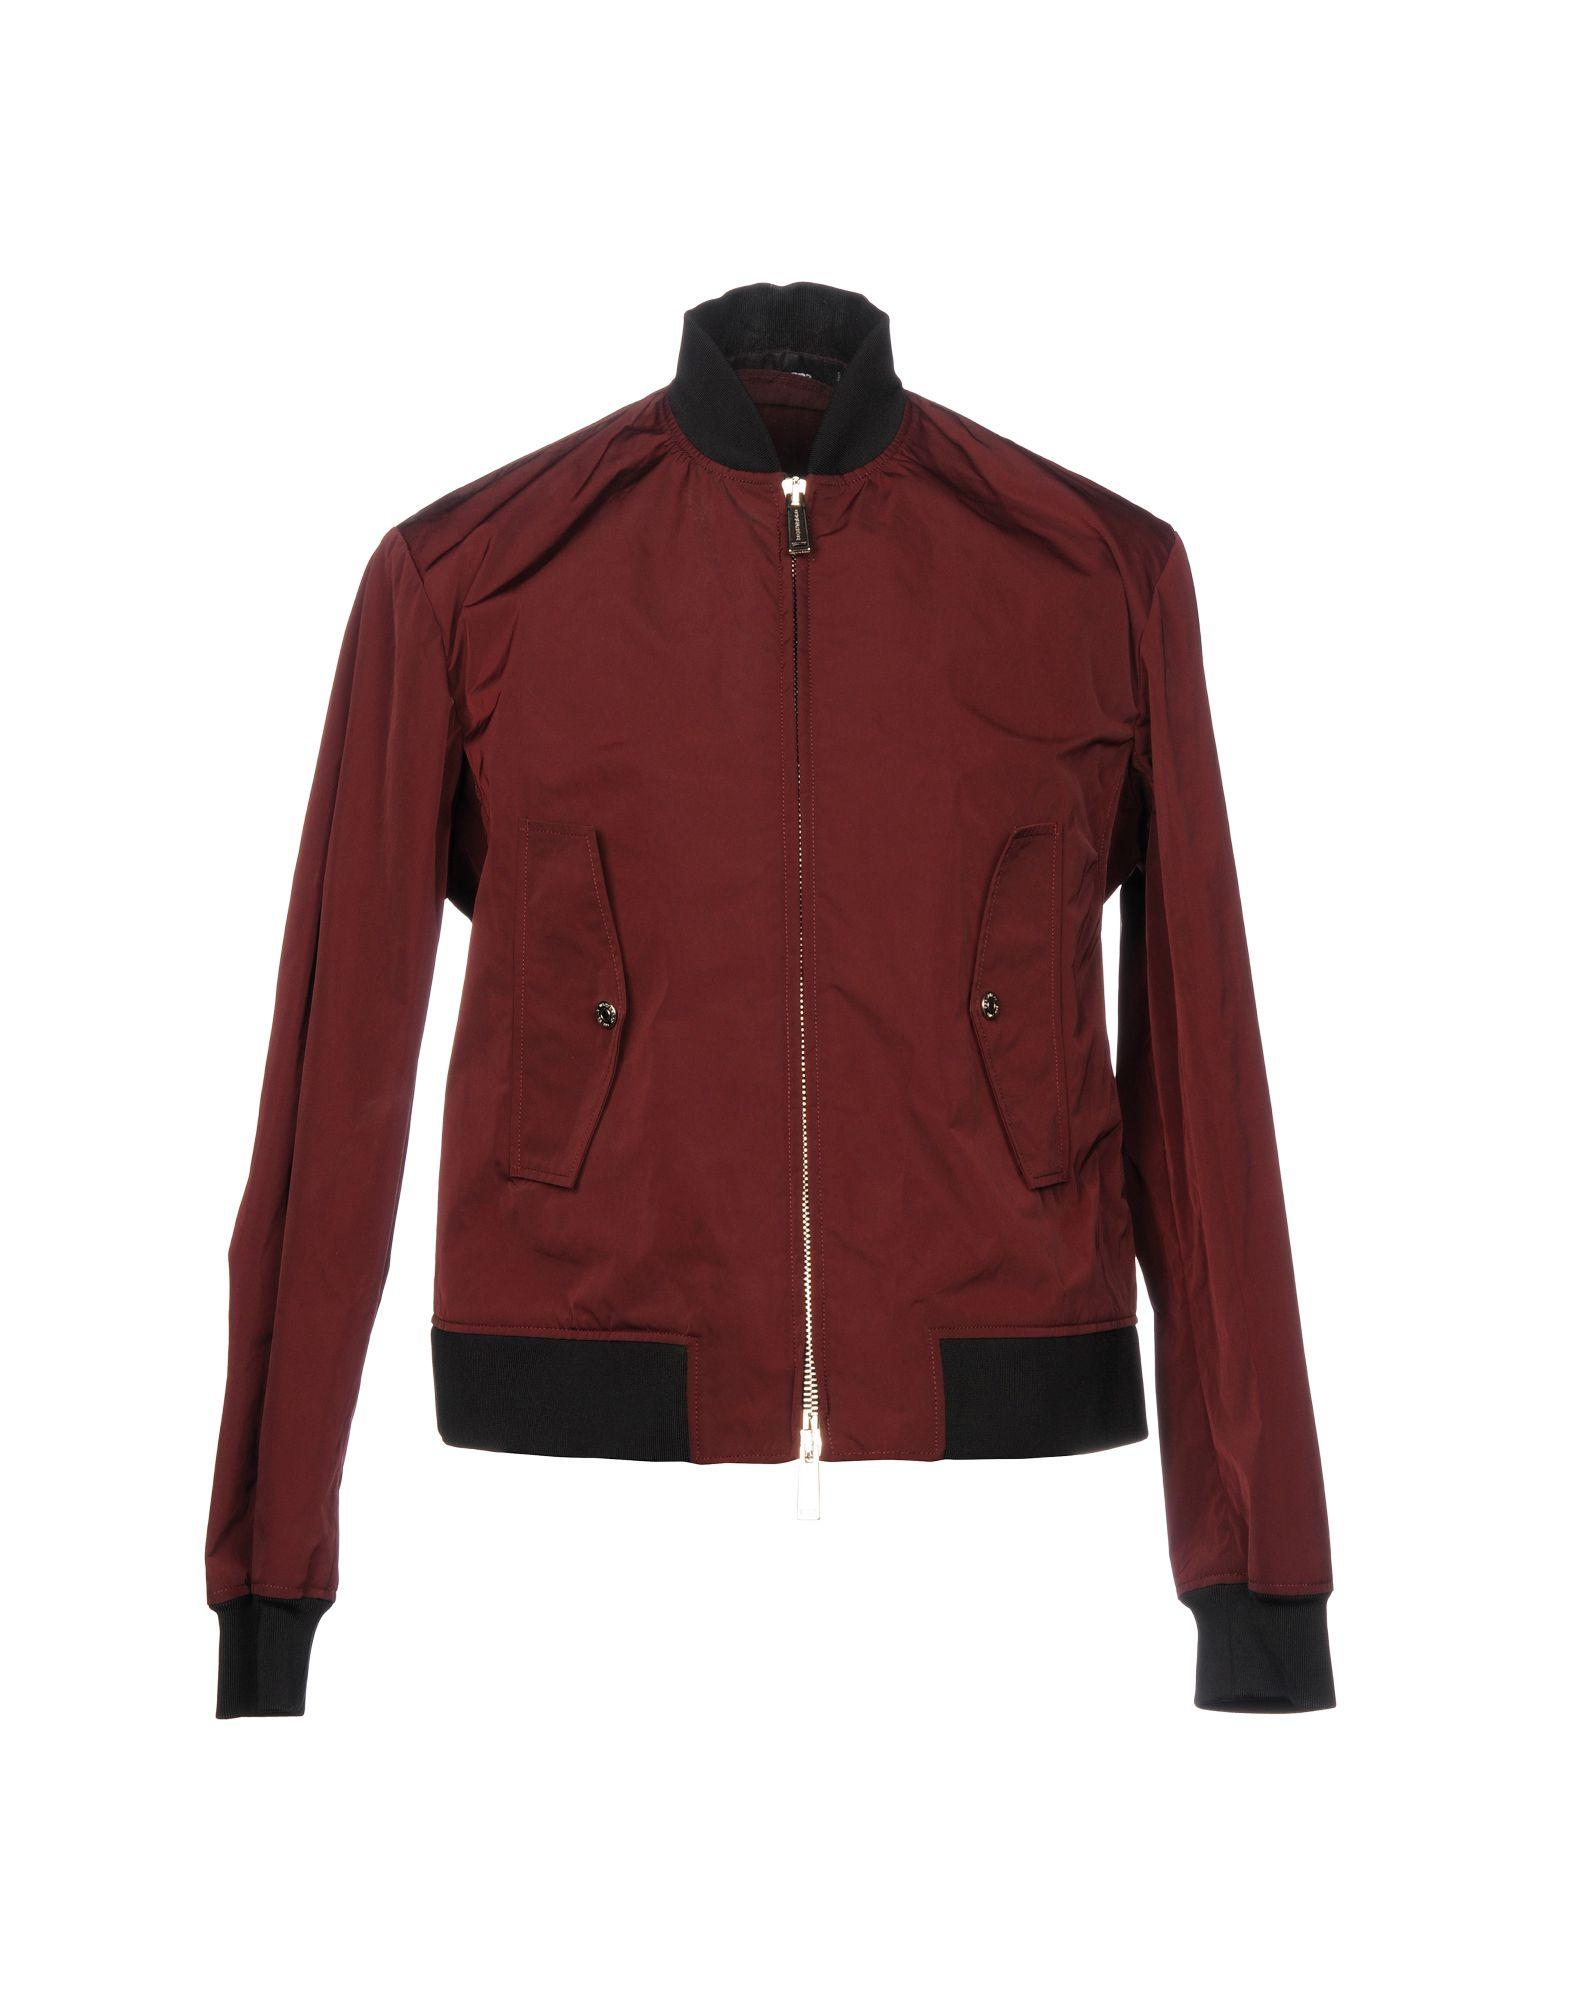 Dsquared2 Jackets In Maroon